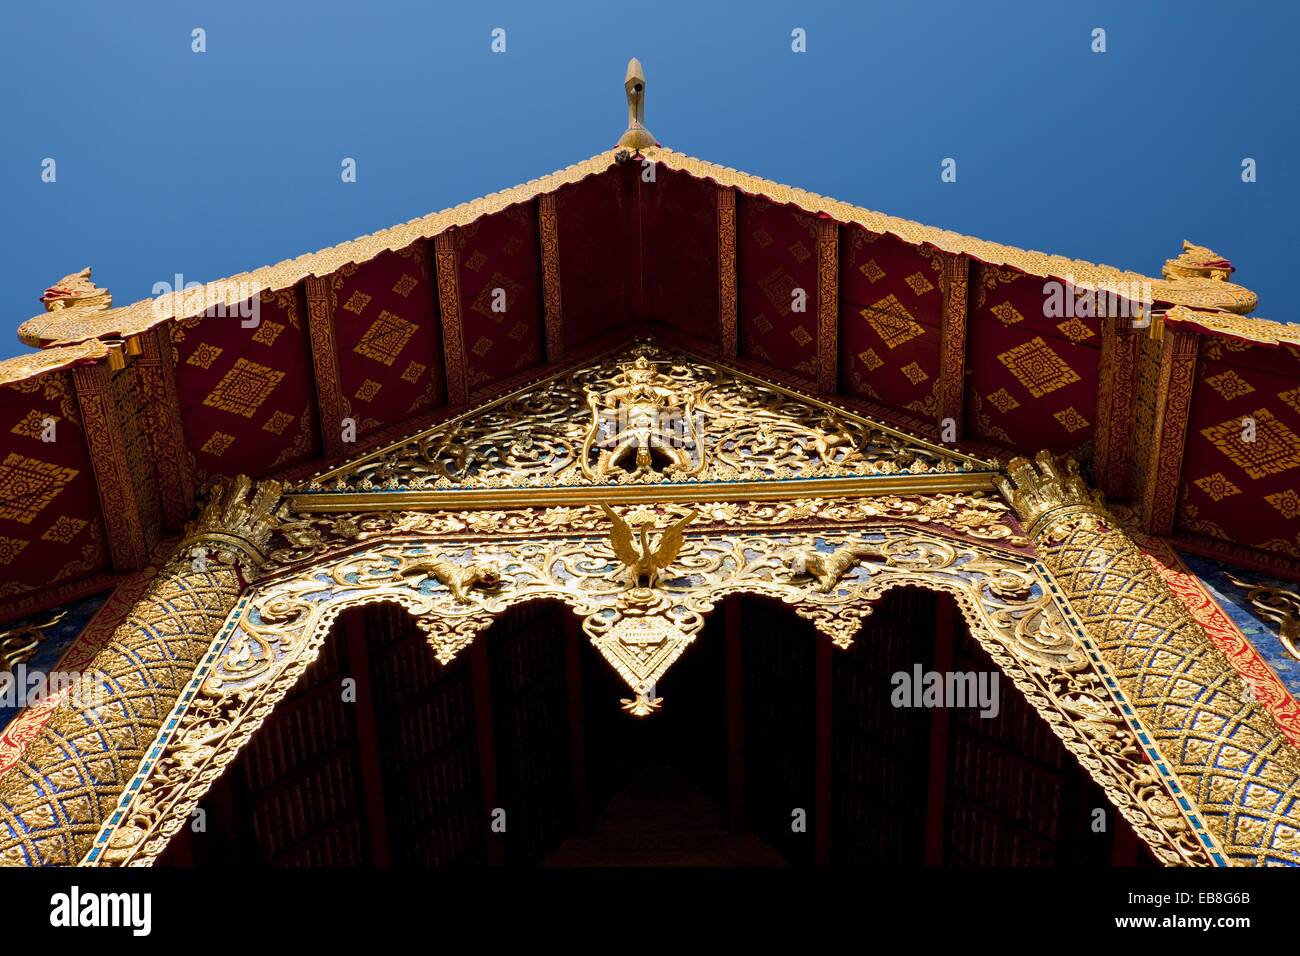 Carved woodwork above entrance to Wihaan or Ordination Hall, Wat Phra Singh, Chiang Mai, Thailand - Stock Image